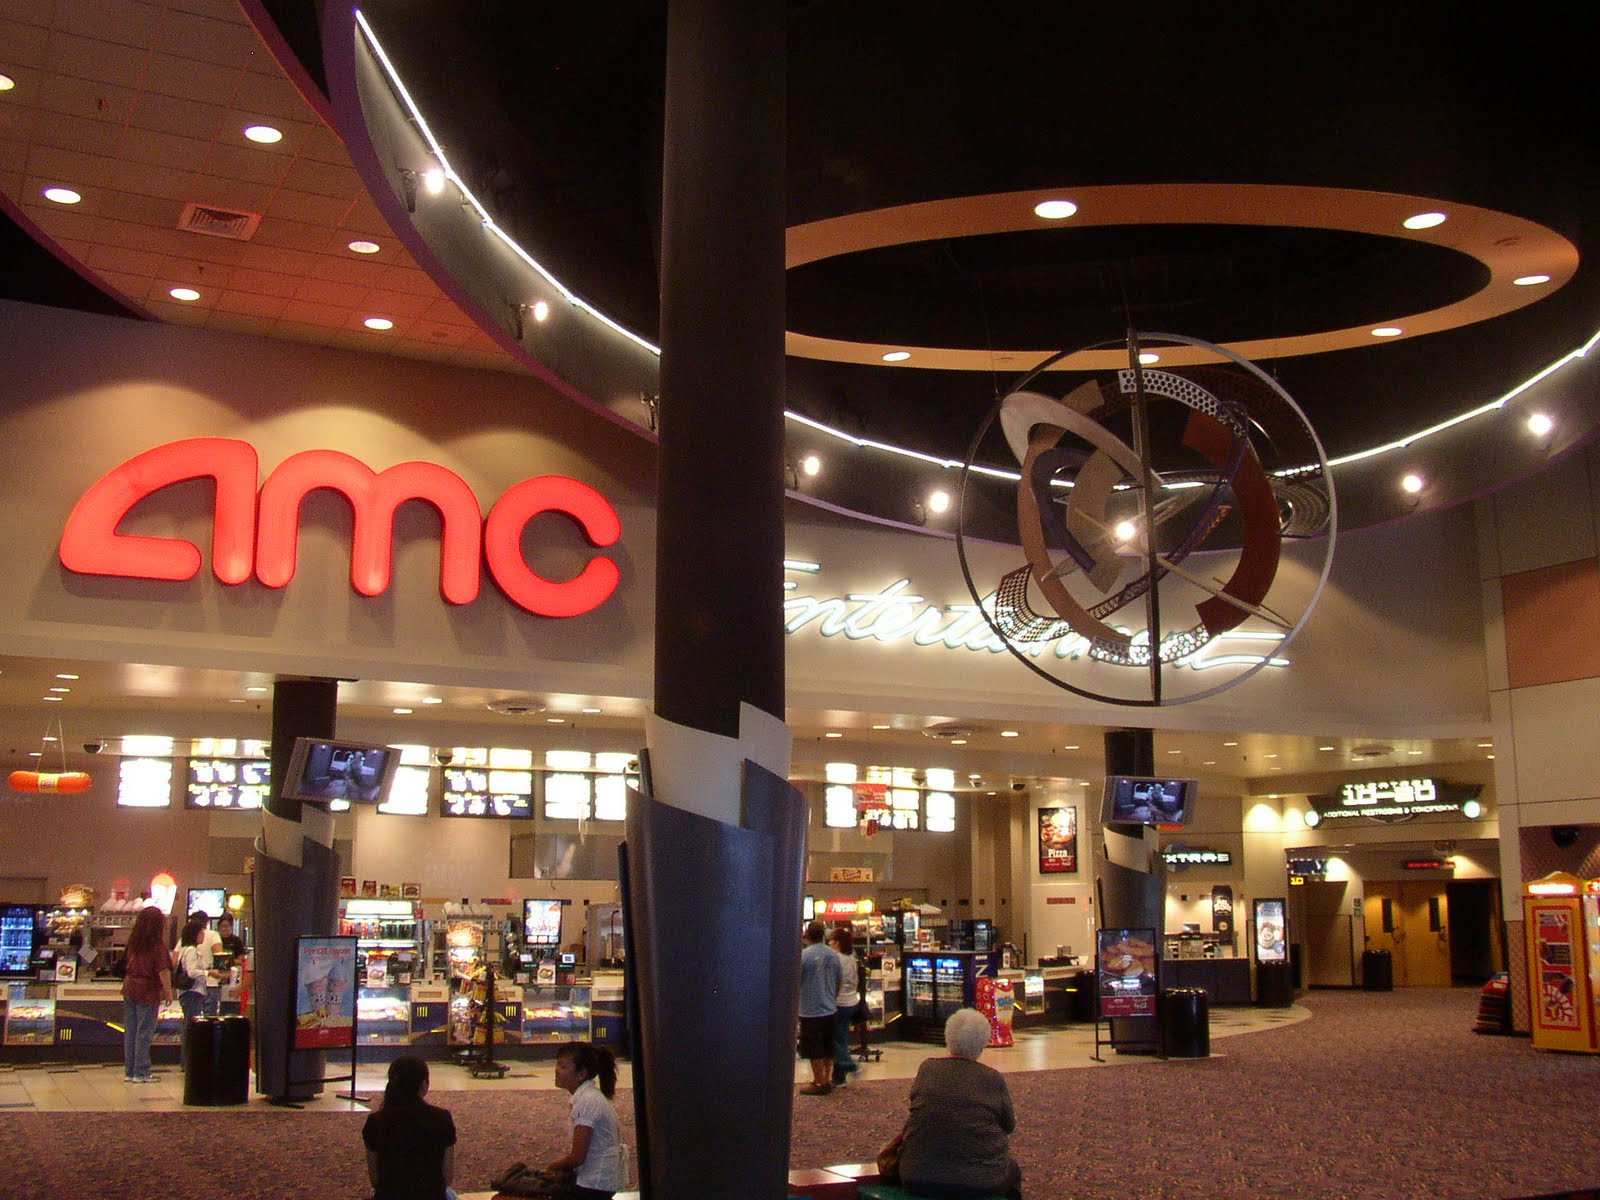 Sinemia Premium is a monthly subscription service that gives you access to 2D-3D movie tickets for one low monthly fee.